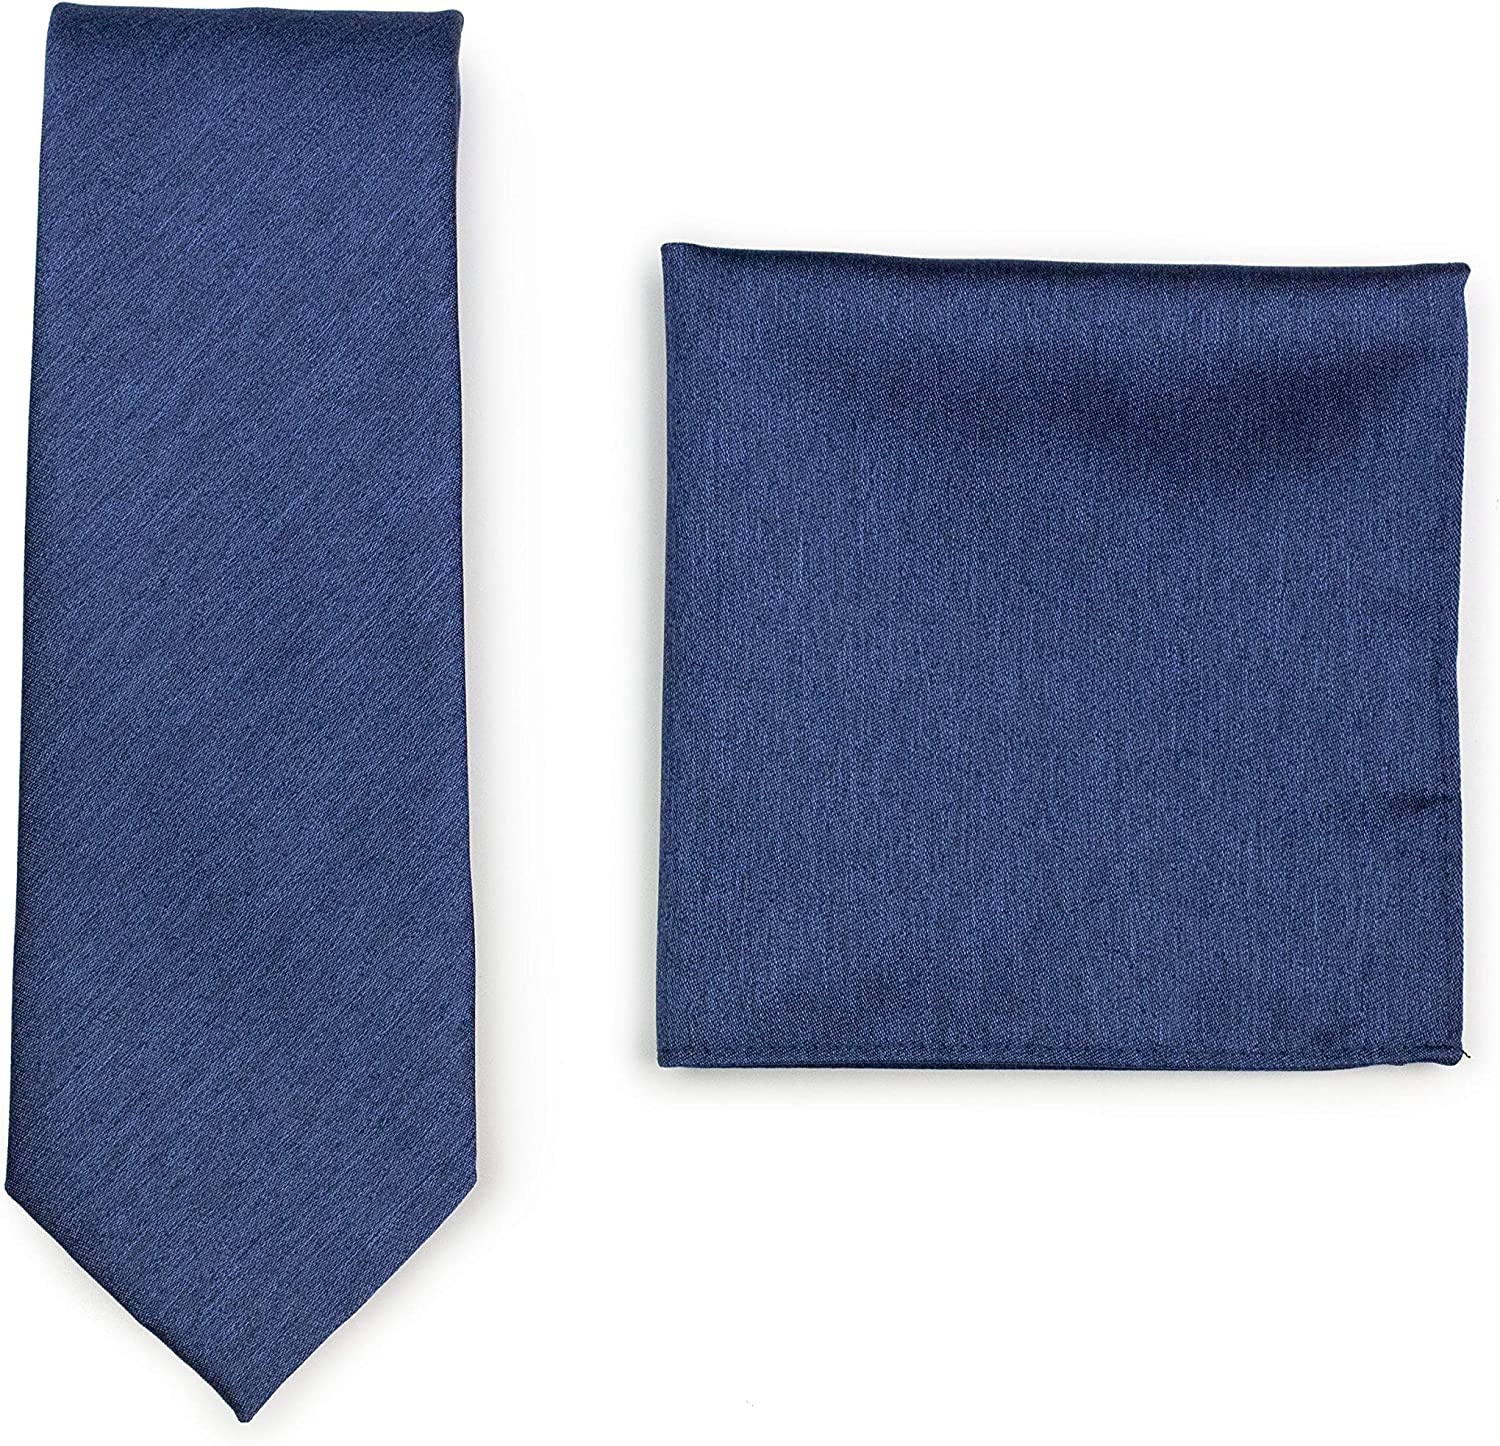 Bows-N-Ties Solid Color Tie + Hanky Set, Matte Woven Ties and Pocket Squares 2-piece set